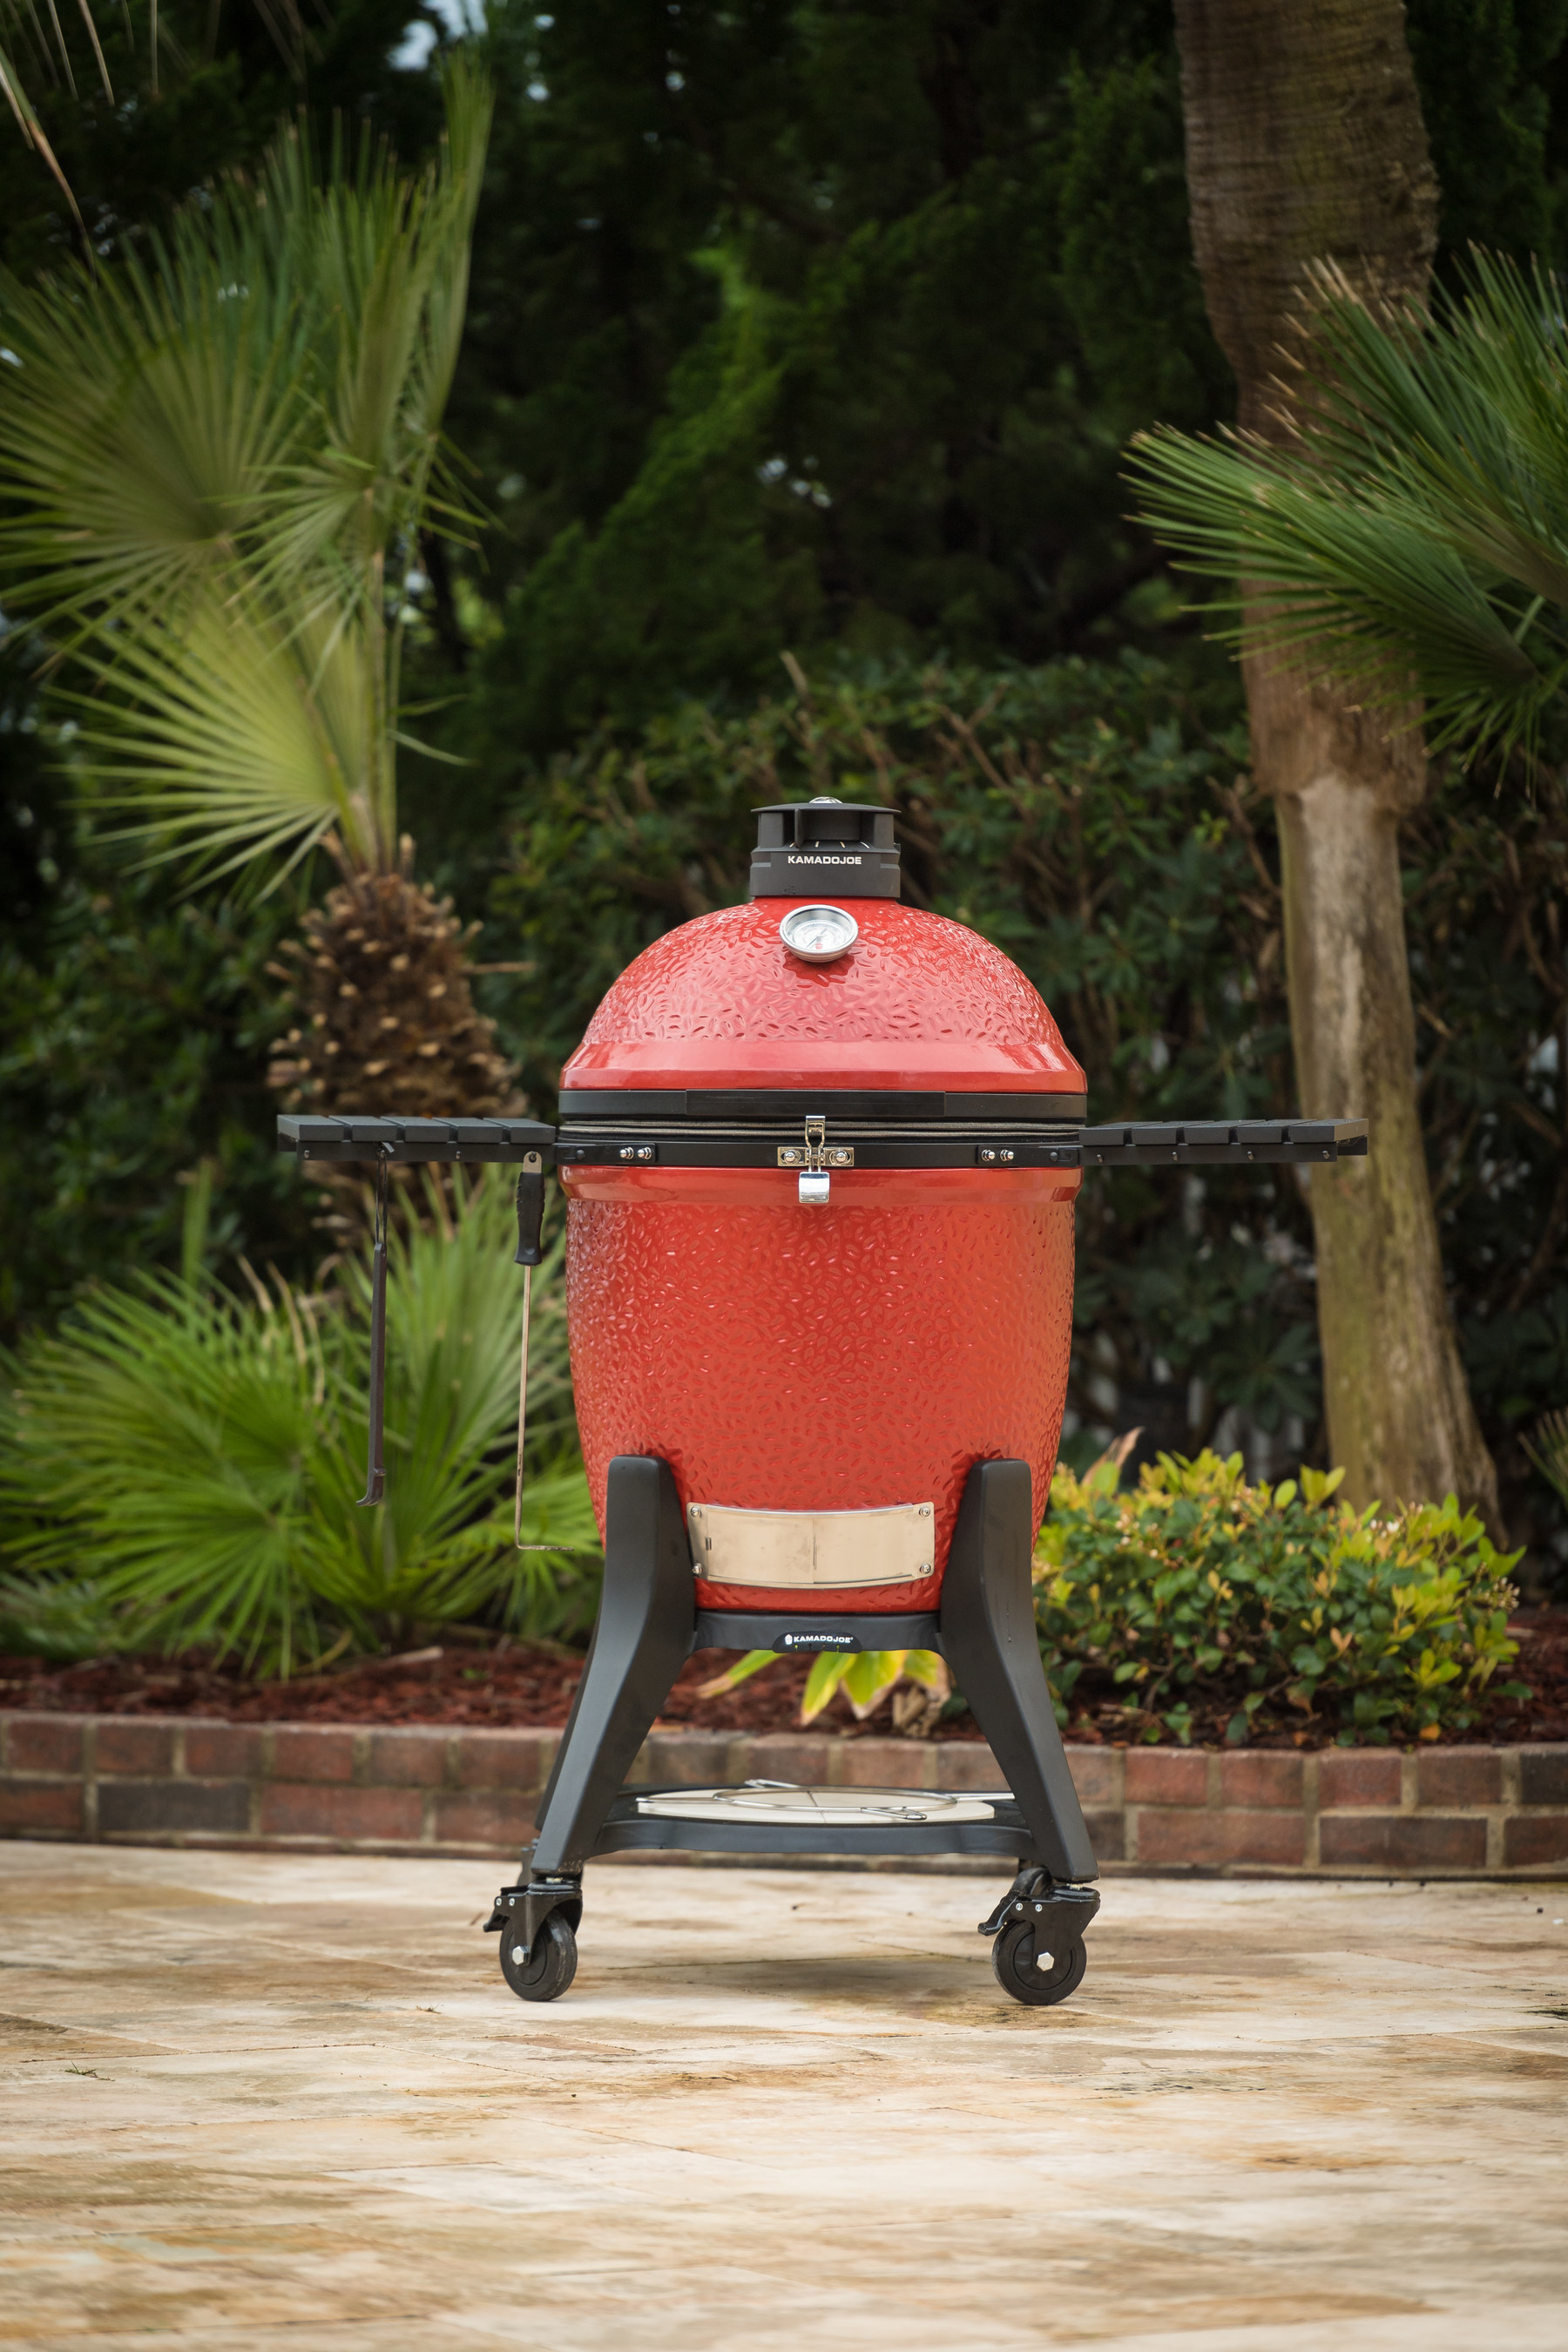 Kamado Joe Launches New Grills and Unveils Innovative New 'Smoke